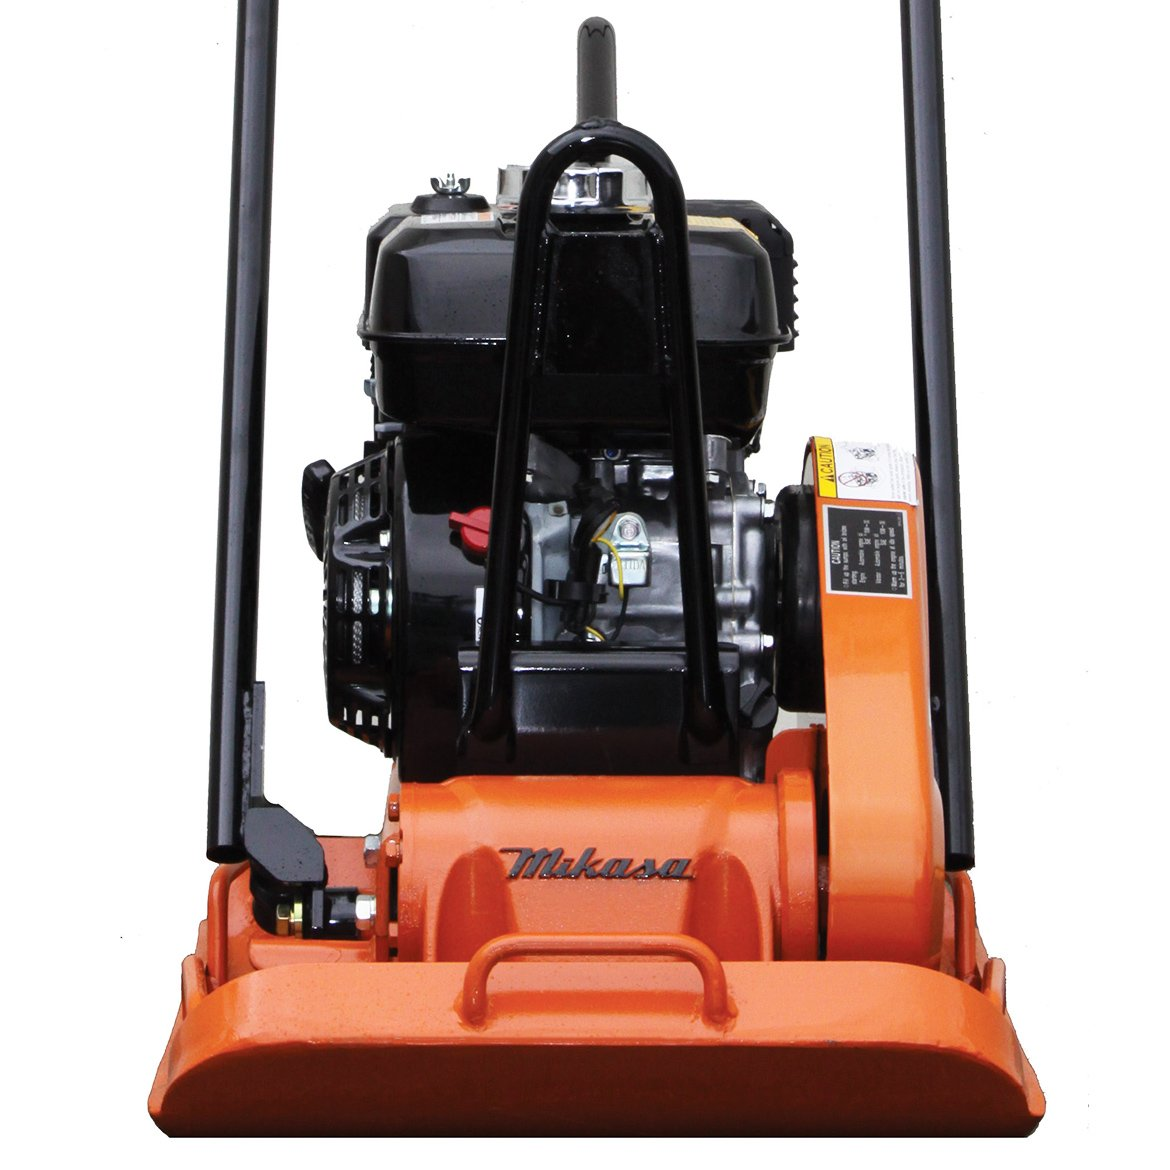 Multiquip MVC82VH Honda GX160 Plate Compactor with No Water Tank 18 Wide